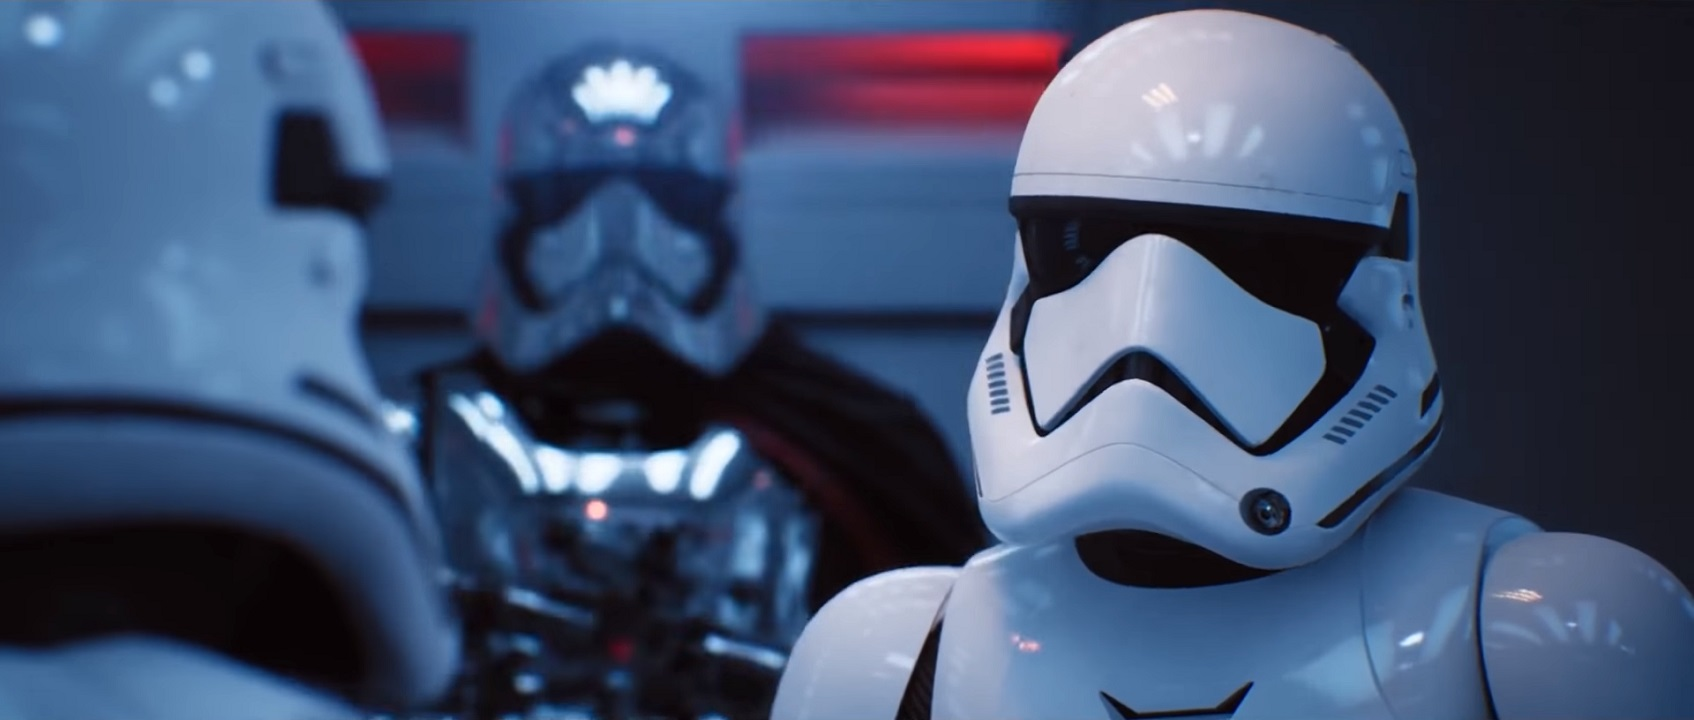 Ray Tracing Support Added In New Windows 10 Update Mspoweruser